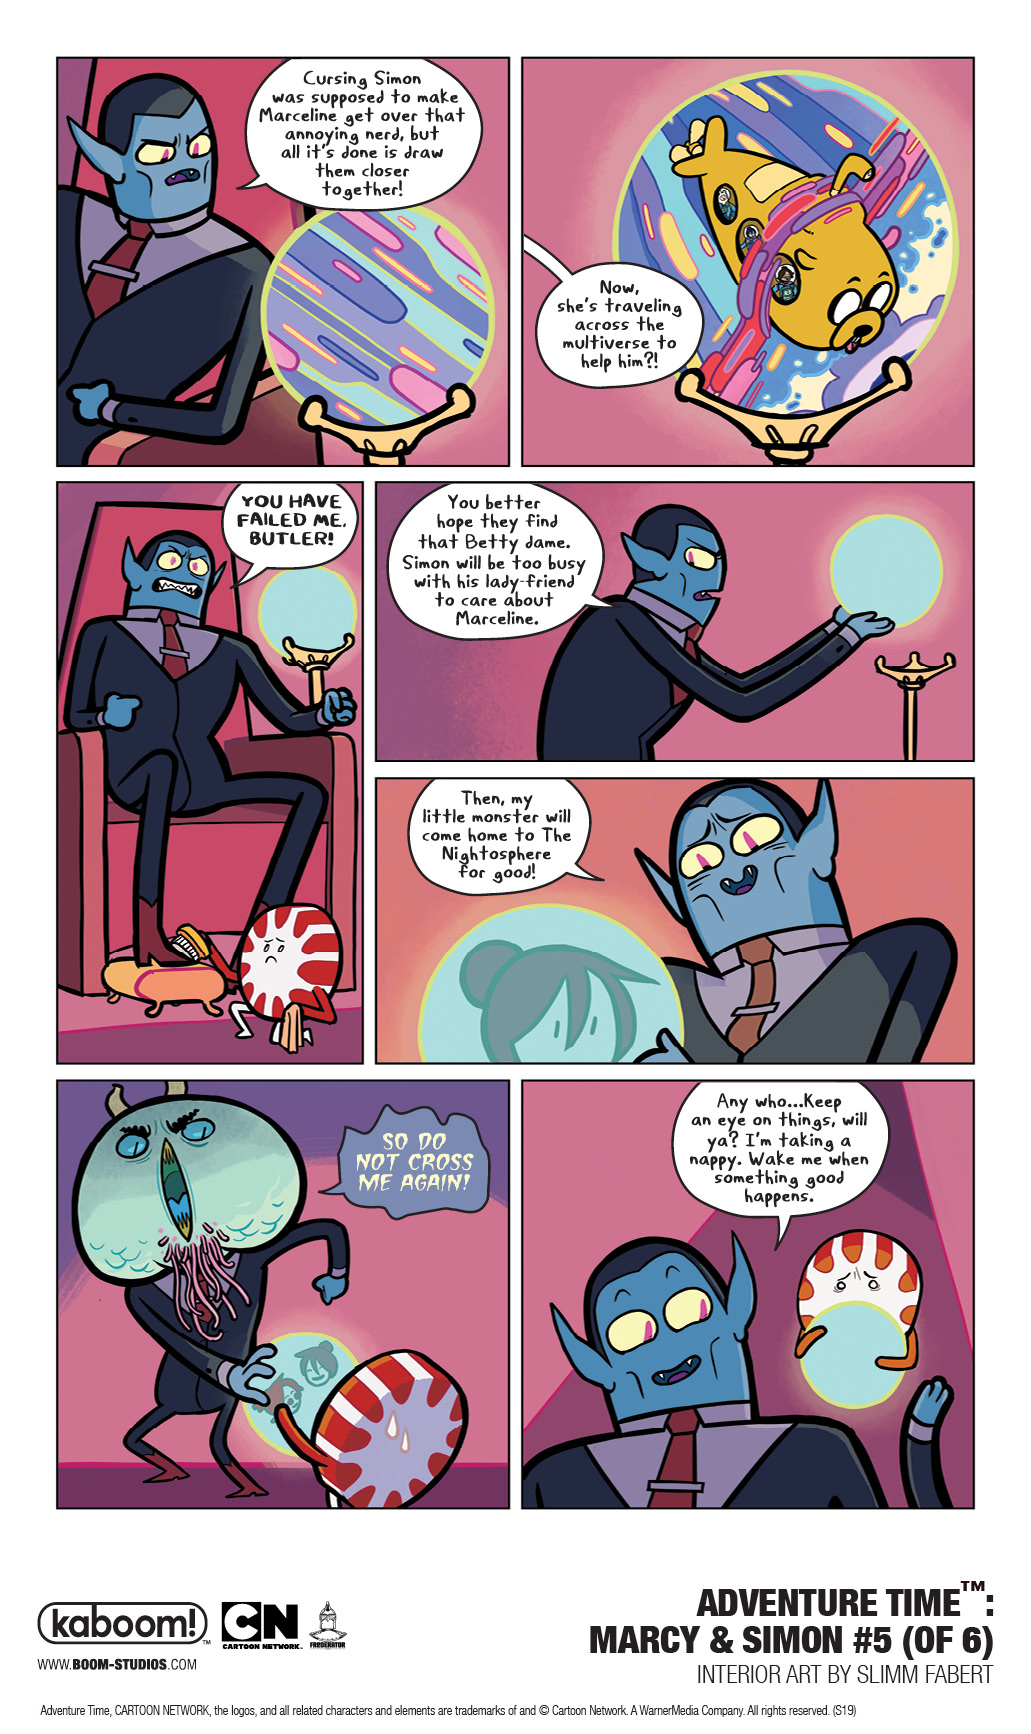 ADVENTURE TIME™: MARCY & SIMON #5